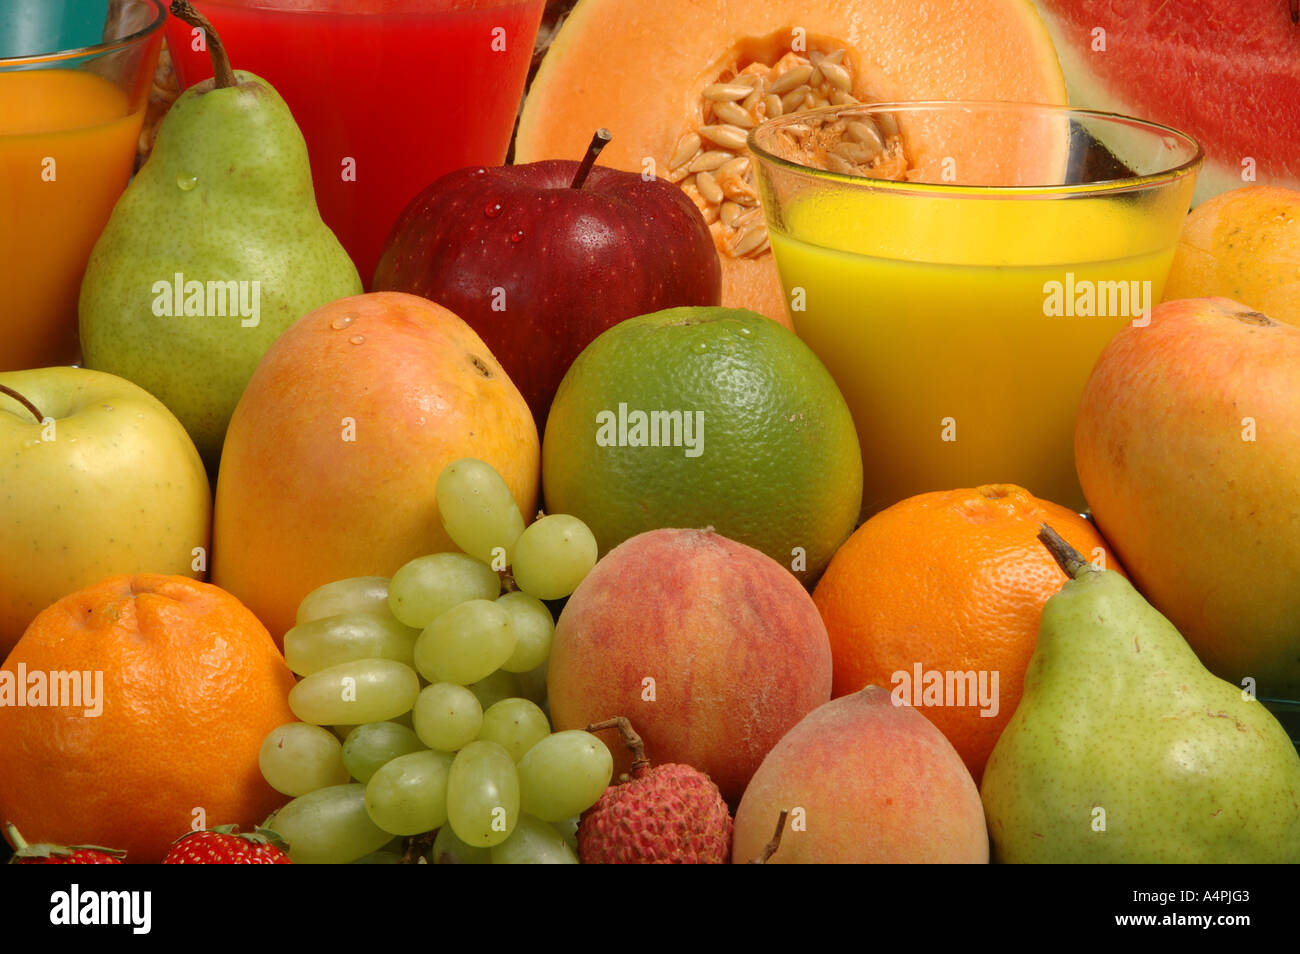 ang77737 fruits arrangement of different fruits healthy sweet